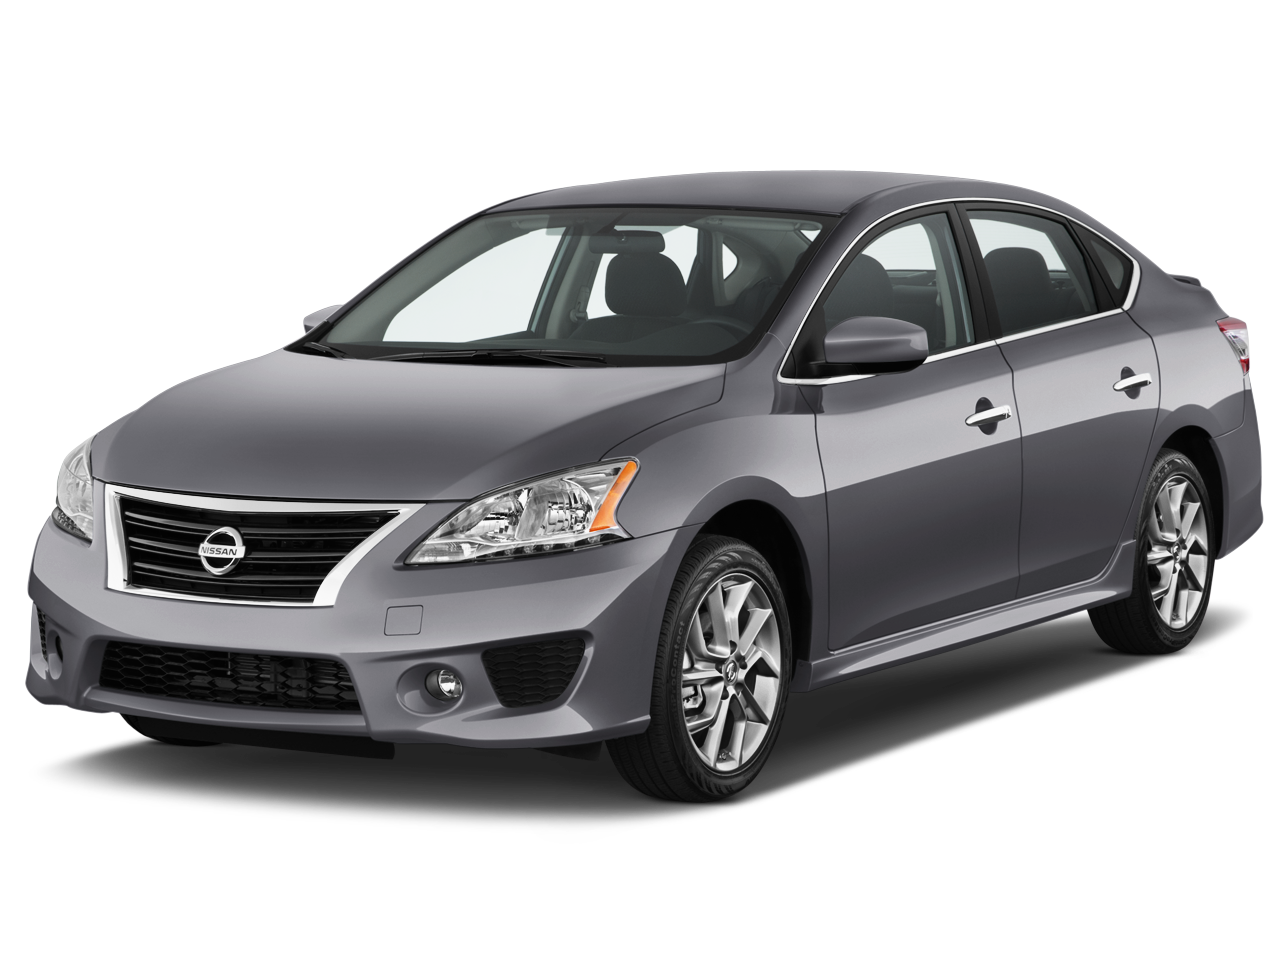 used certified one owner 2014 nissan sentra sv near. Black Bedroom Furniture Sets. Home Design Ideas